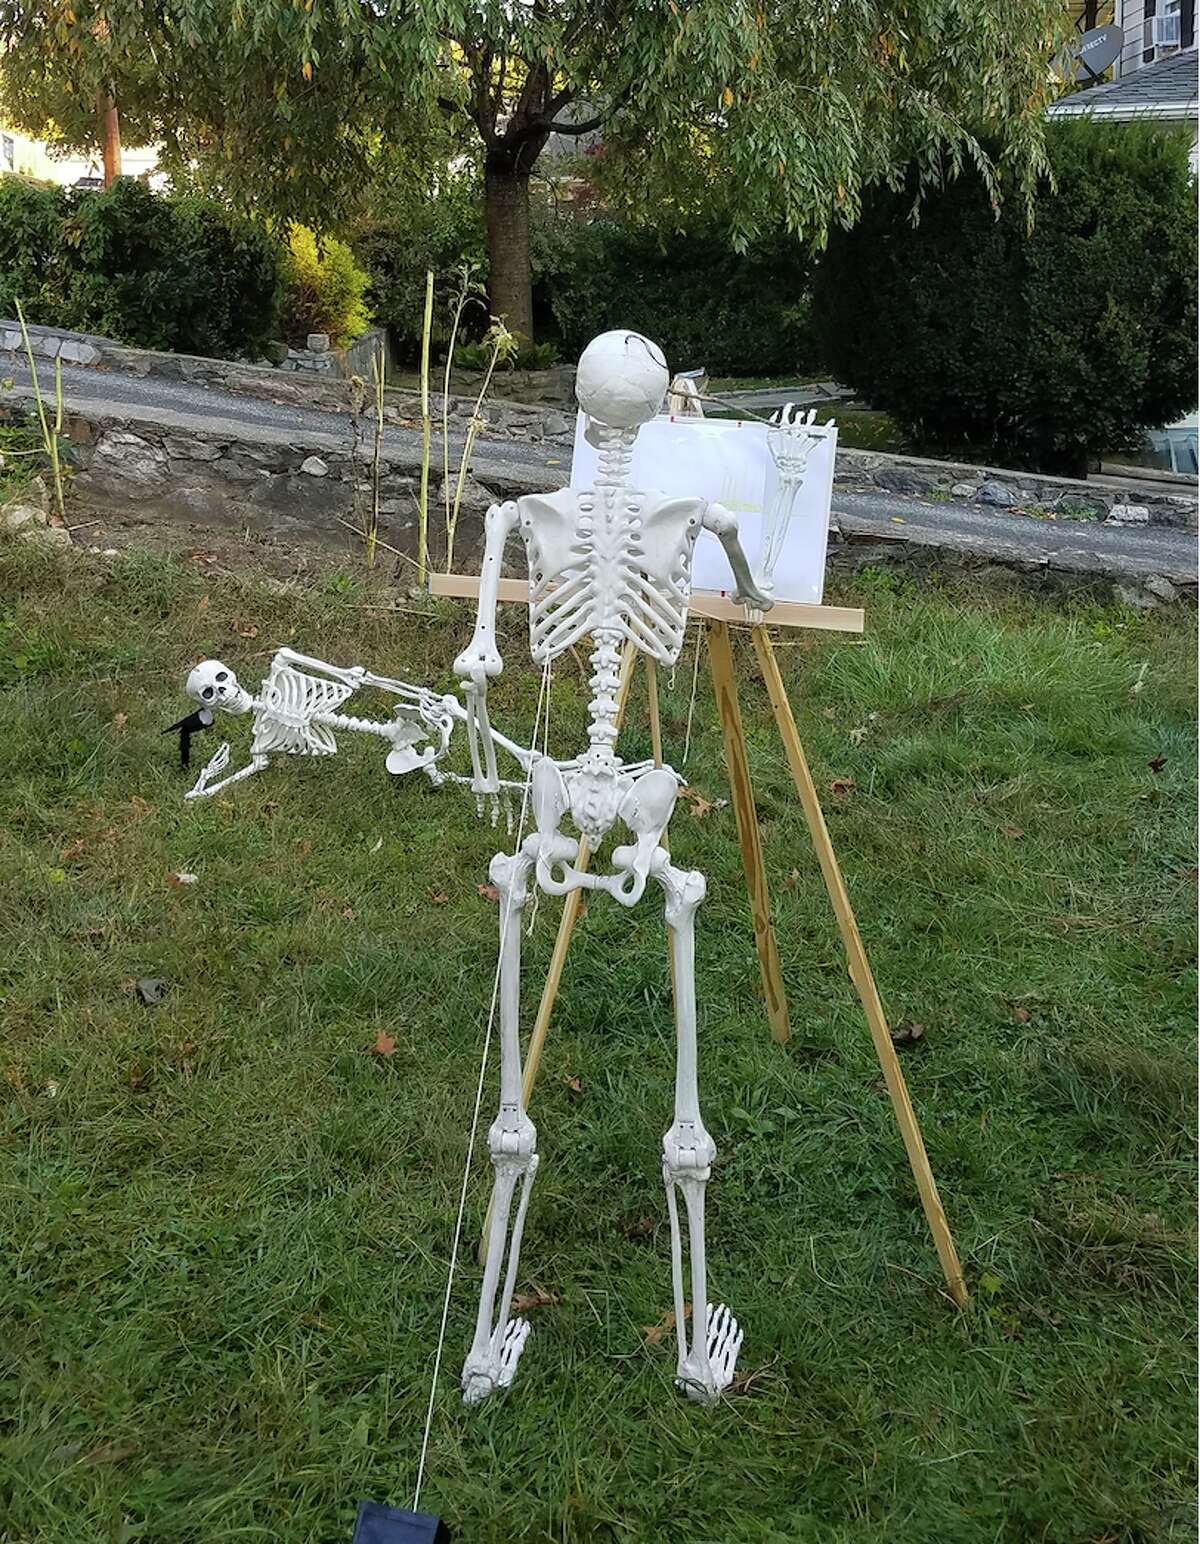 """""""I wanted two big skeletons,"""" Erin Dummeyer said. """"Then I thought, 'We should put them in funny poses in our front yard.'"""" Mike took it from there. Each day he places the skeletons in a different vignette. One day the skeletons sat on the bushes watching people walk by the Dummeyers' Palmer Street home. Another day they peered over the stone wall."""